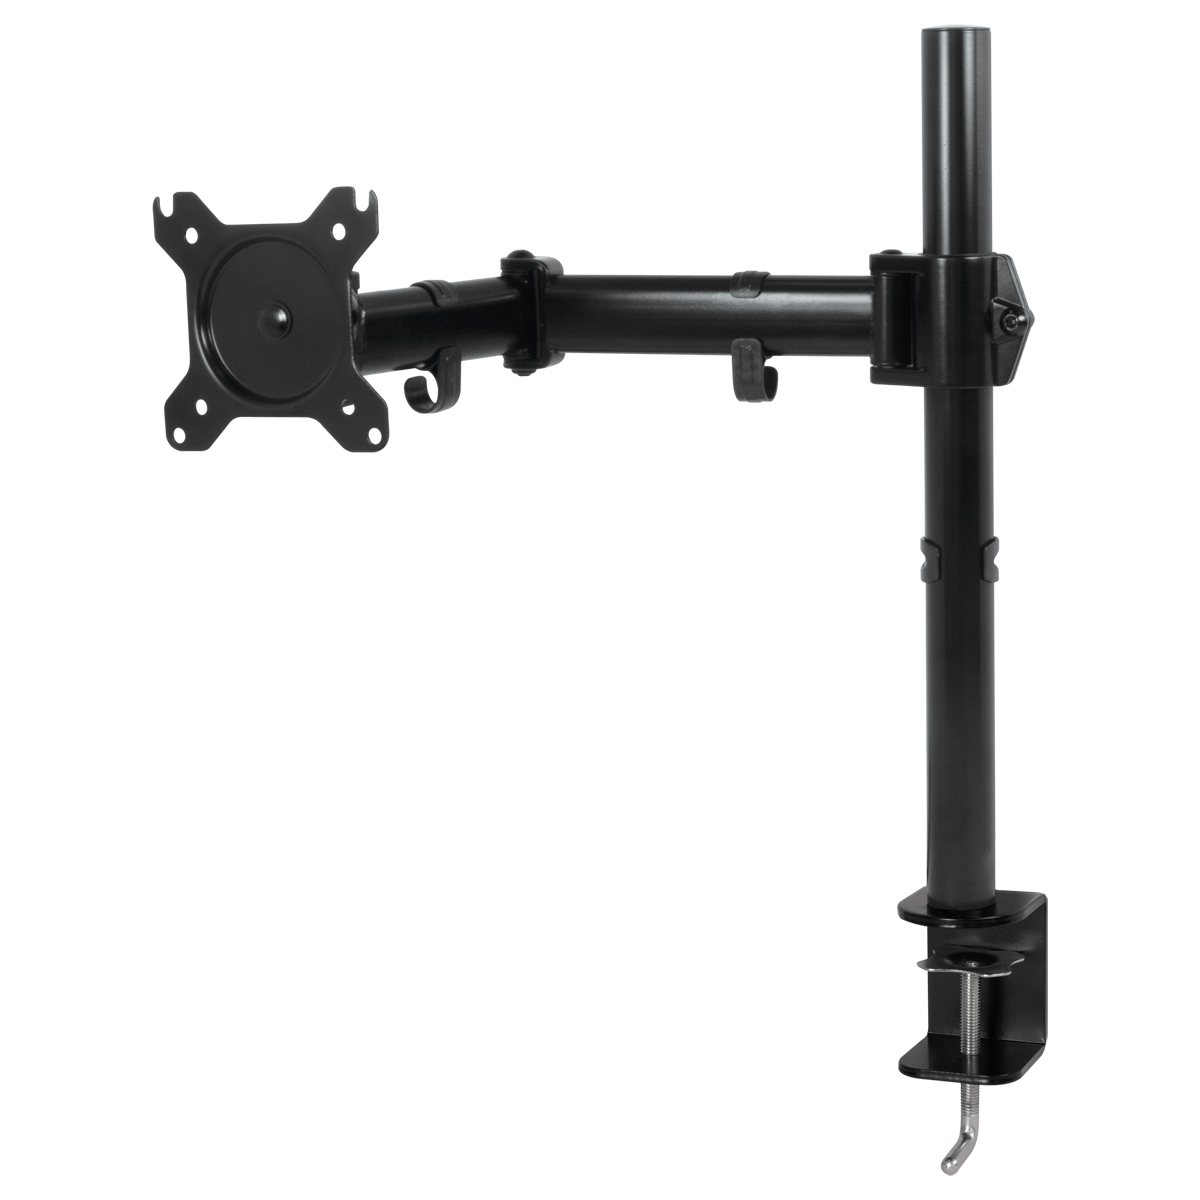 AEMNT00039A ARCTIC Z1 Basic - Desk Mount Monitor Arm - Ent01